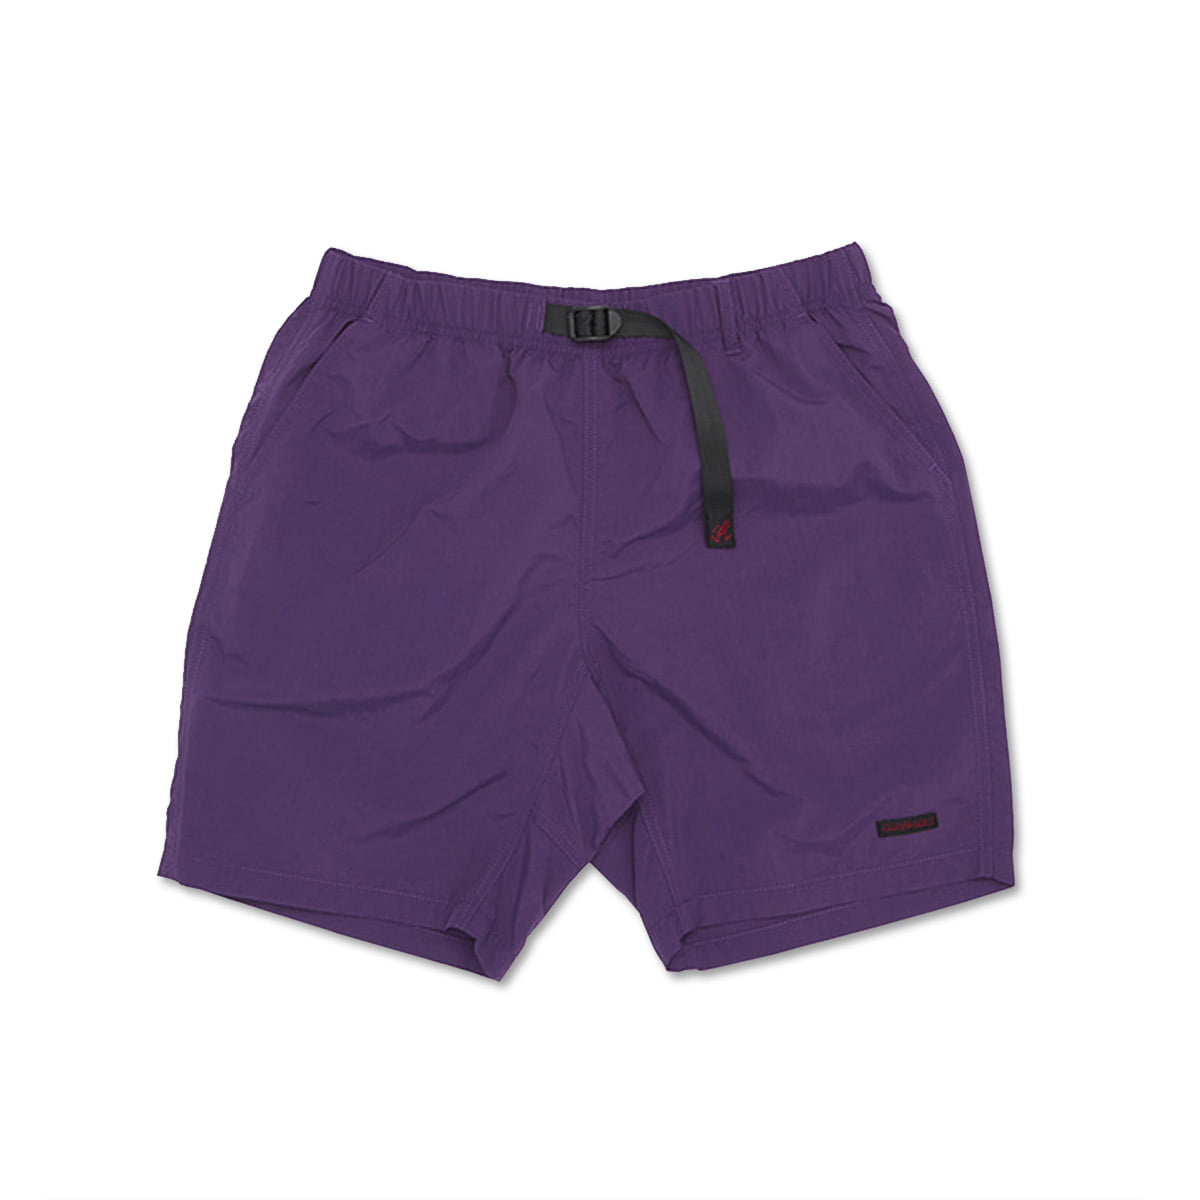 [GRAMICCI] SHELL PACKABLE SHORTS 'PURPLE'